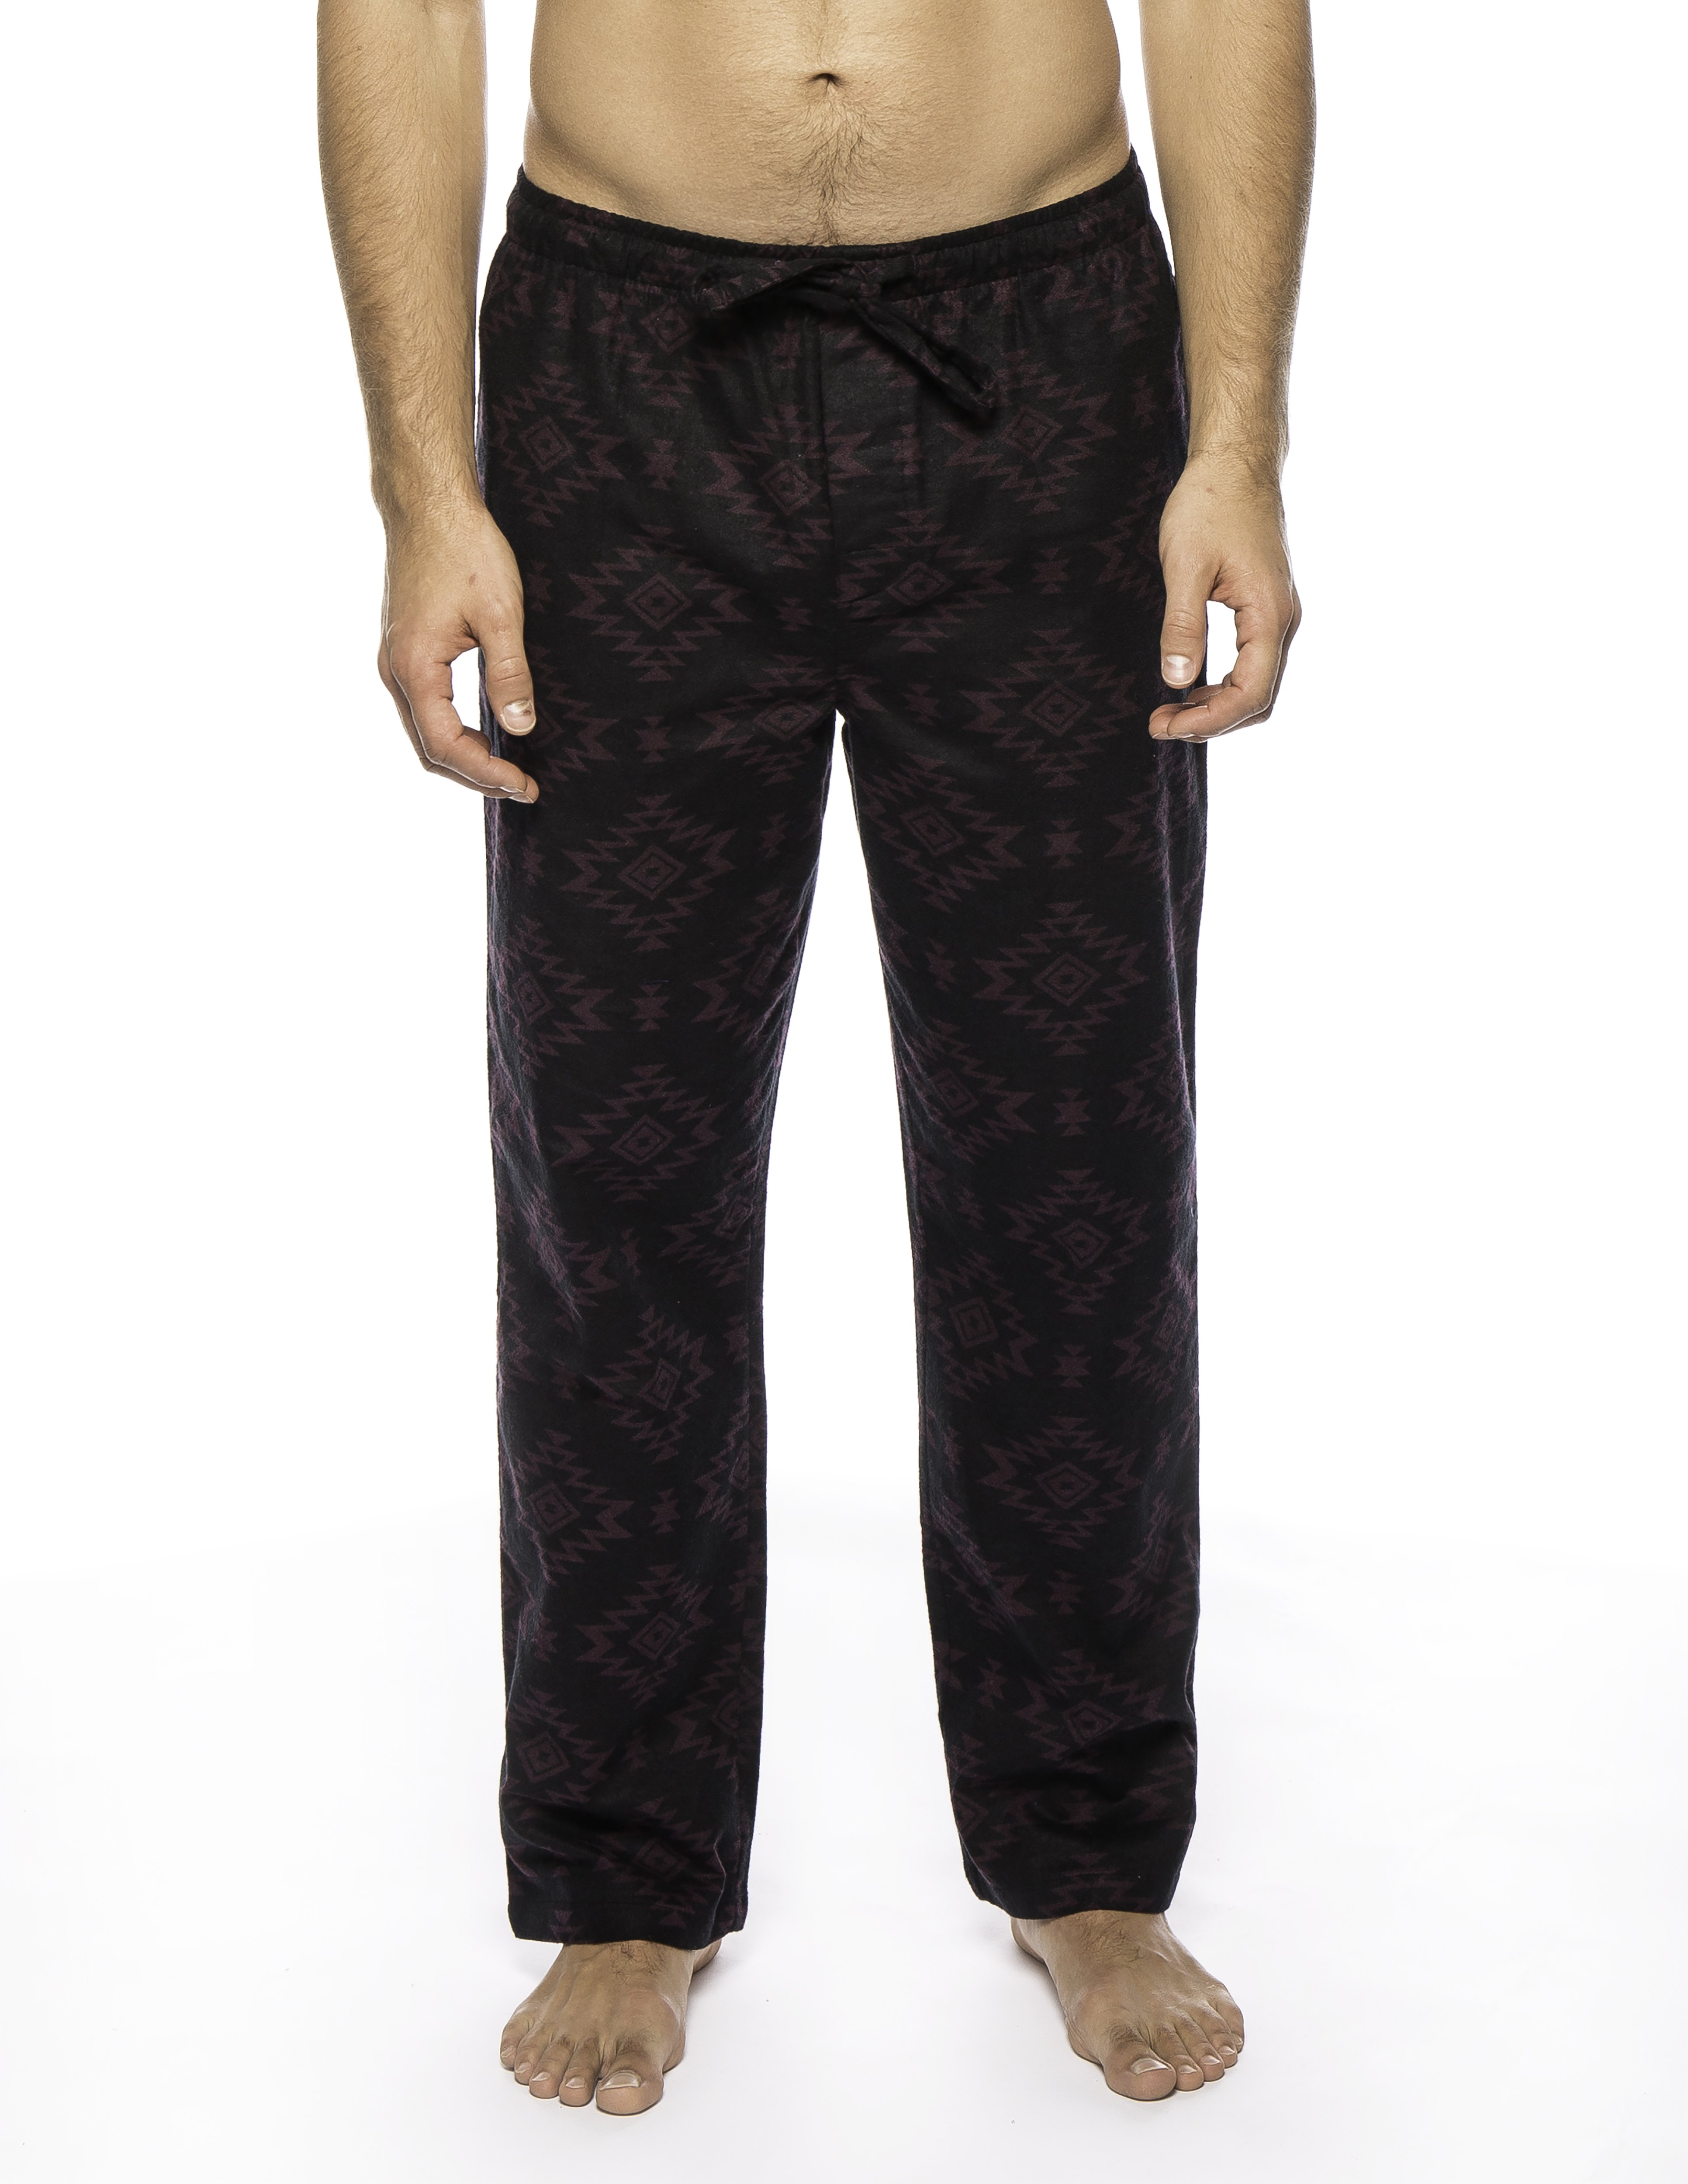 Twin Boat Men's 100% Cotton Flannel Lounge Pants with Pockets